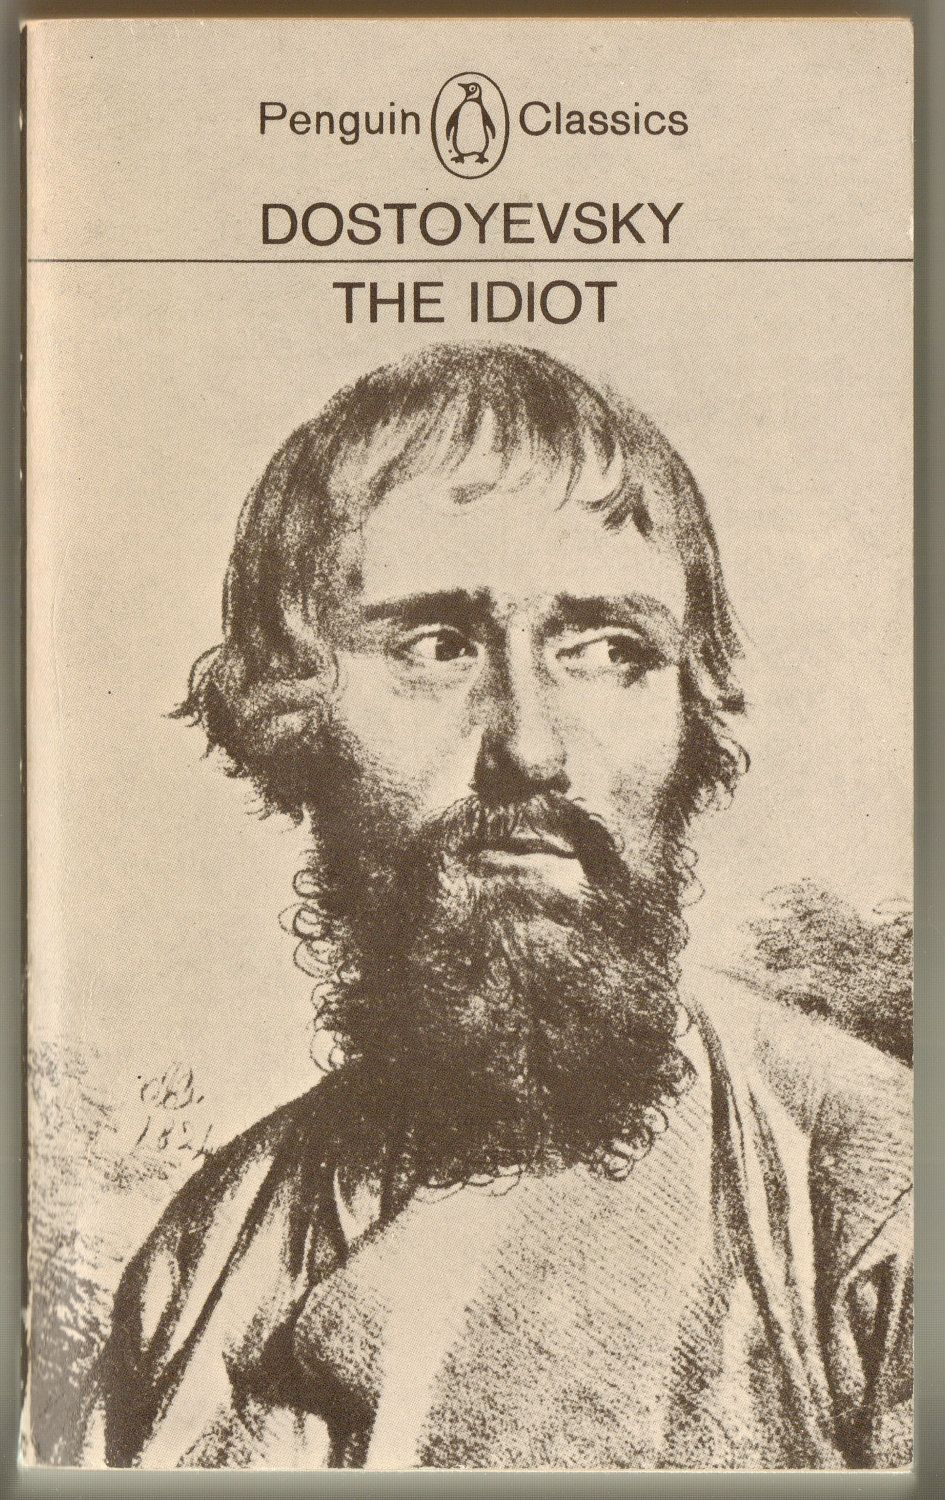 Fydor Dostoyevsky: The Idiot. (Now read it at least 4 times - don't what it is that draws me back!)